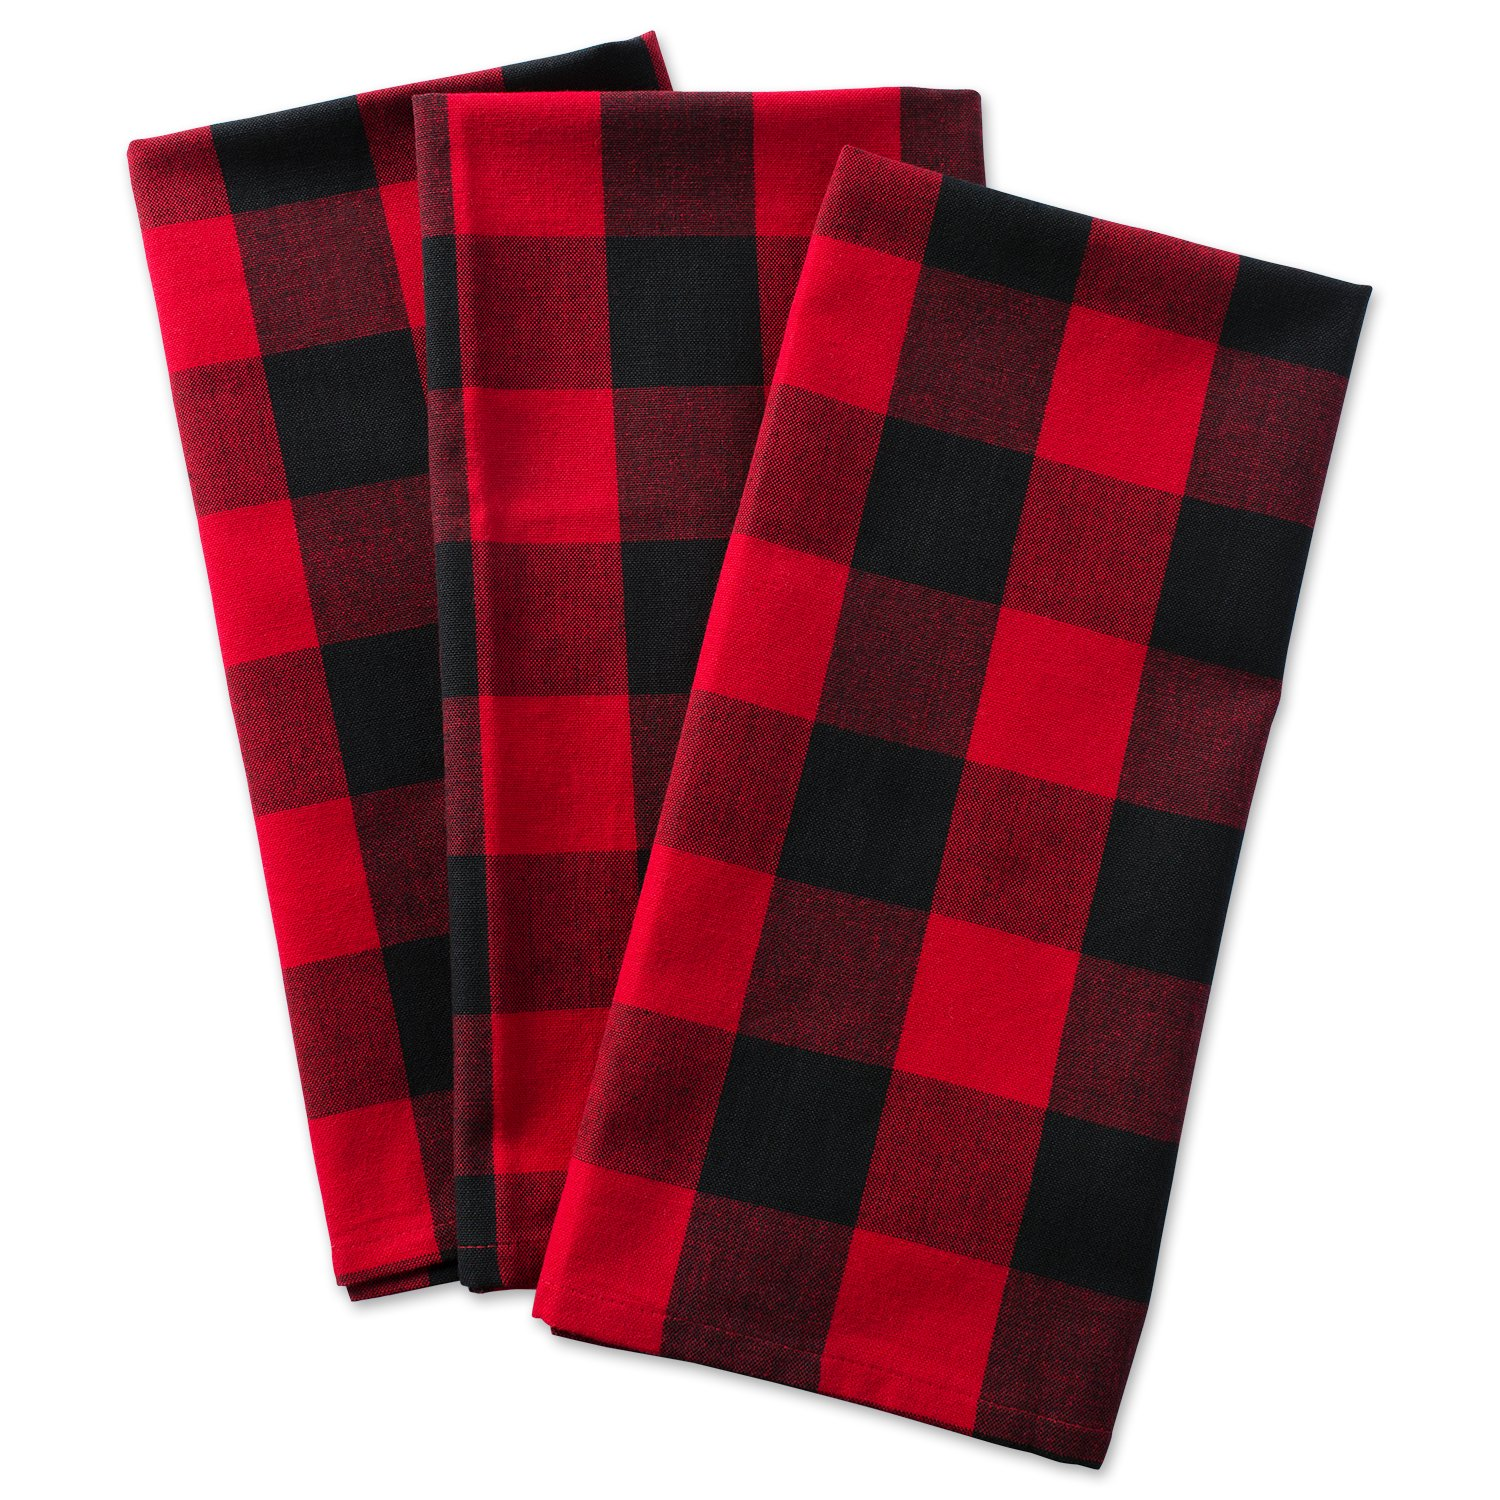 DII Cotton Buffalo Check Plaid Dish Towels, (20x30, Set of 3) Monogrammable Oversized Kitchen Towels for Drying, Cleaning, Cooking, Baking - Red & Black